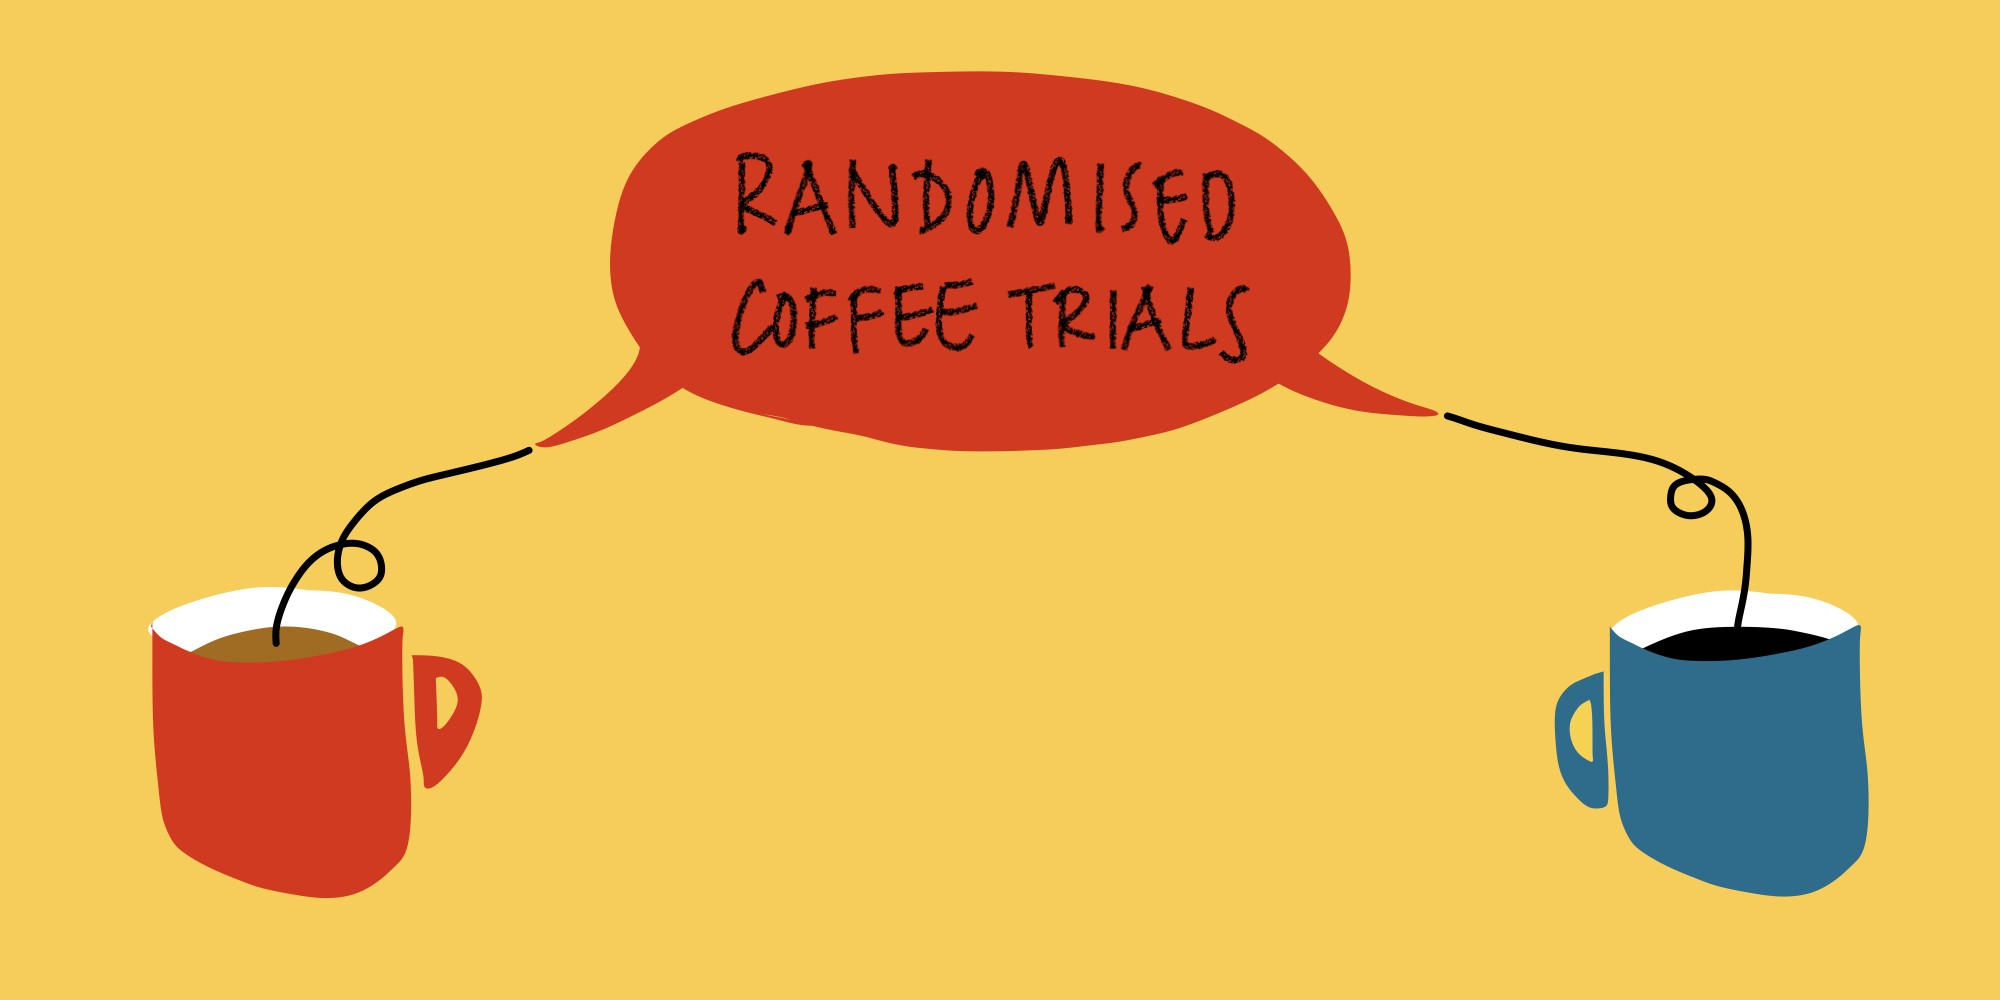 Illustration showing two cups of coffee connected by a speech bubble which says 'Randomised Coffee Trials'.